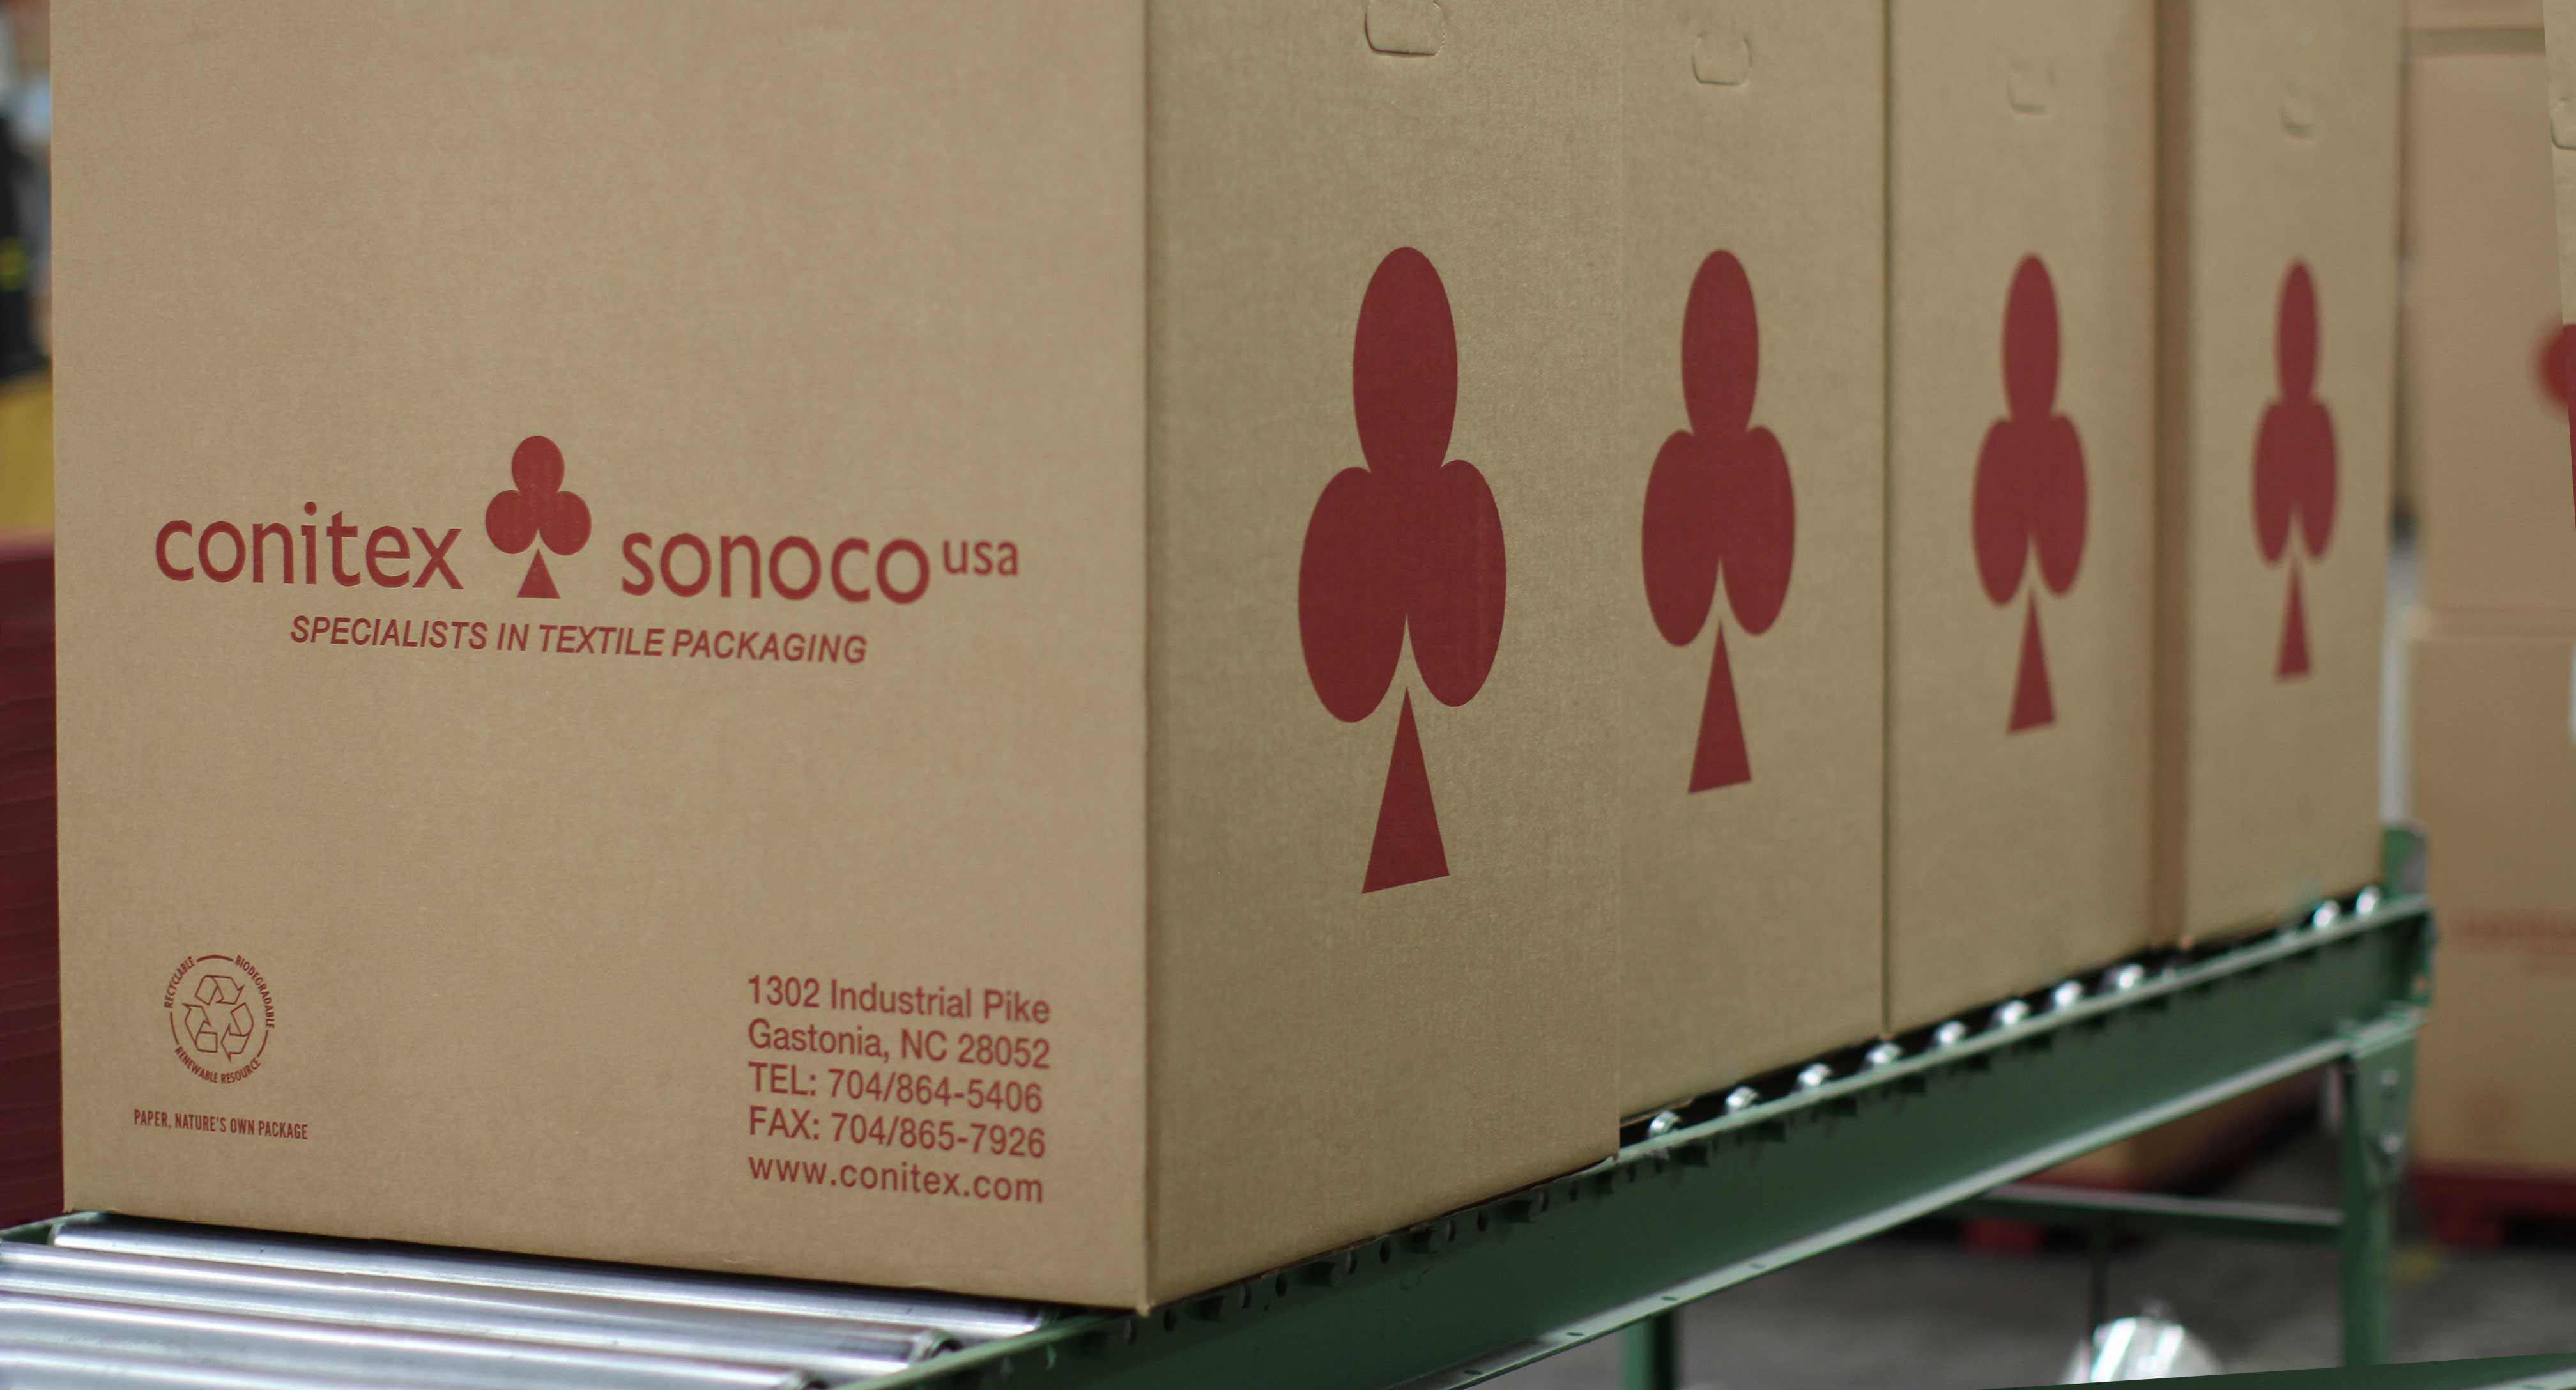 All Products | Conitex Sonoco | Sustainable Packaging Solutions